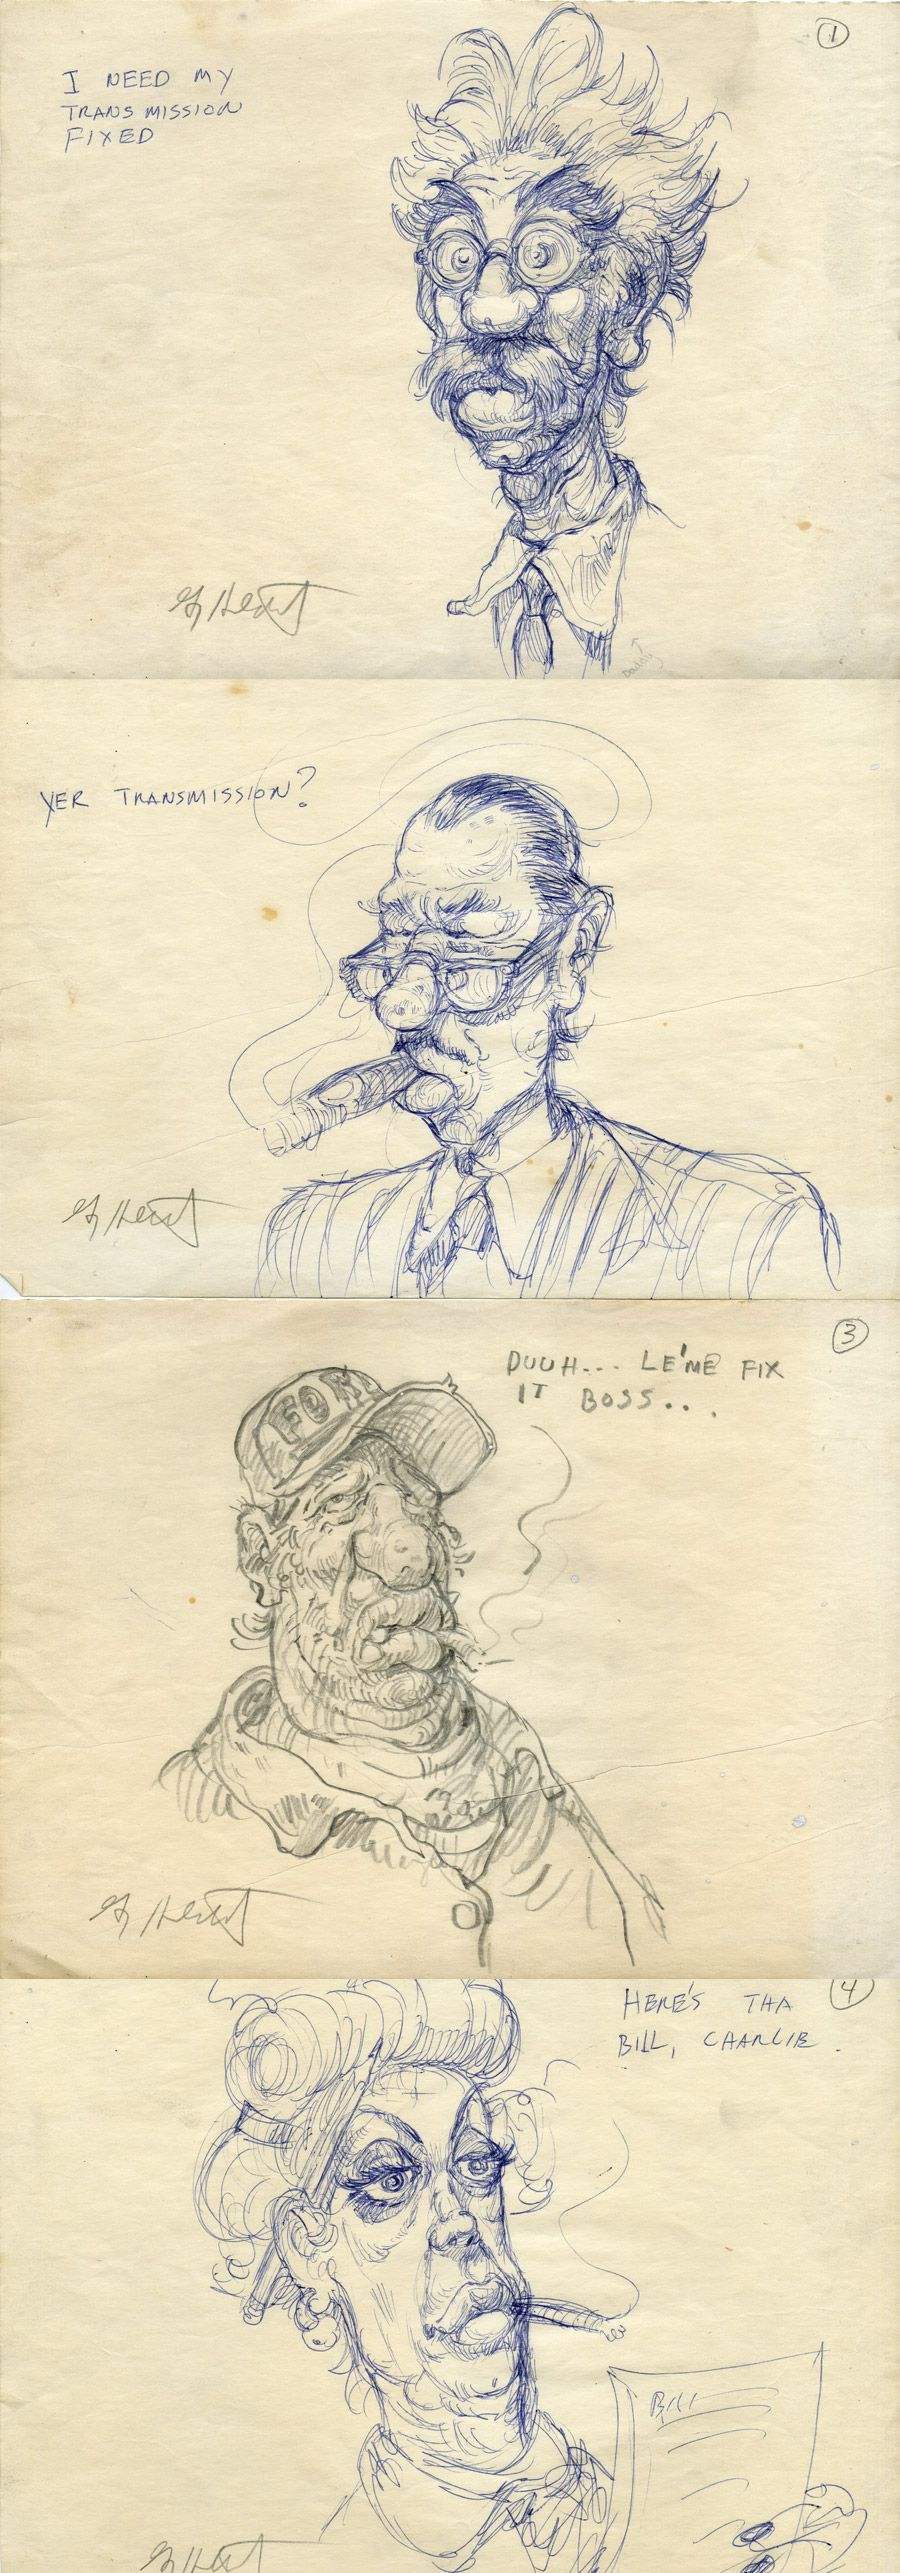 Need my car fixed. A small series of doodles from 1970 by Greg Hildebrandt.